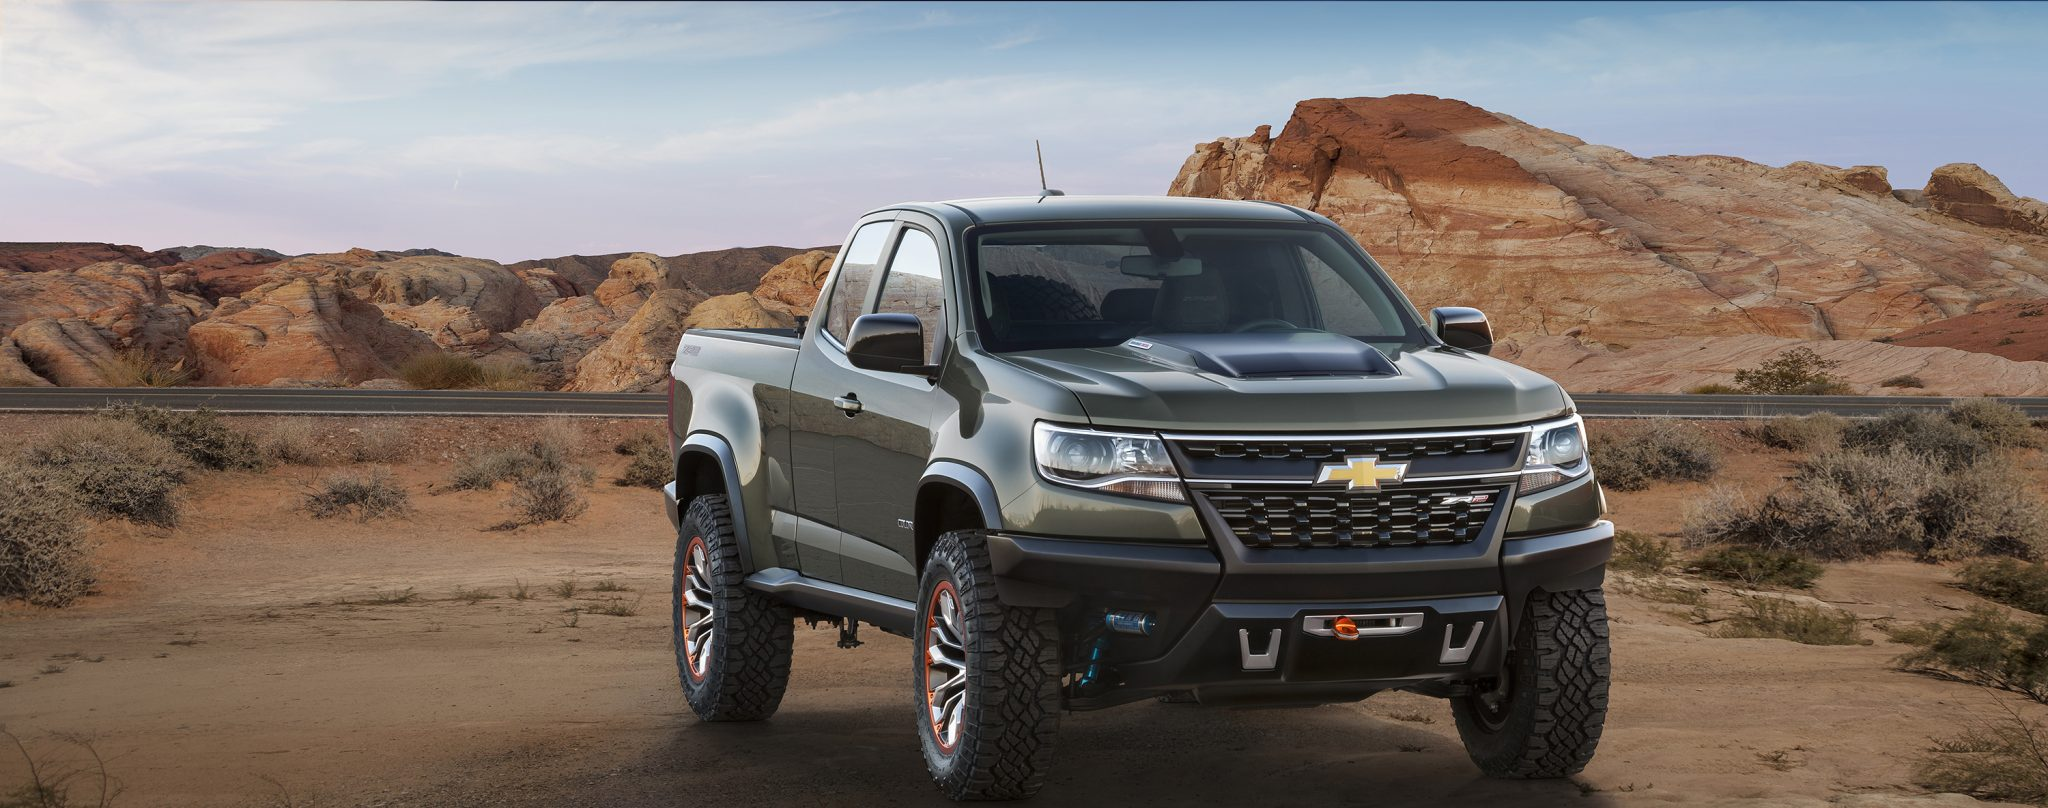 Colorado ZR2 Concept Could Be Chevy s Answer to the F 150 SVT Raptor